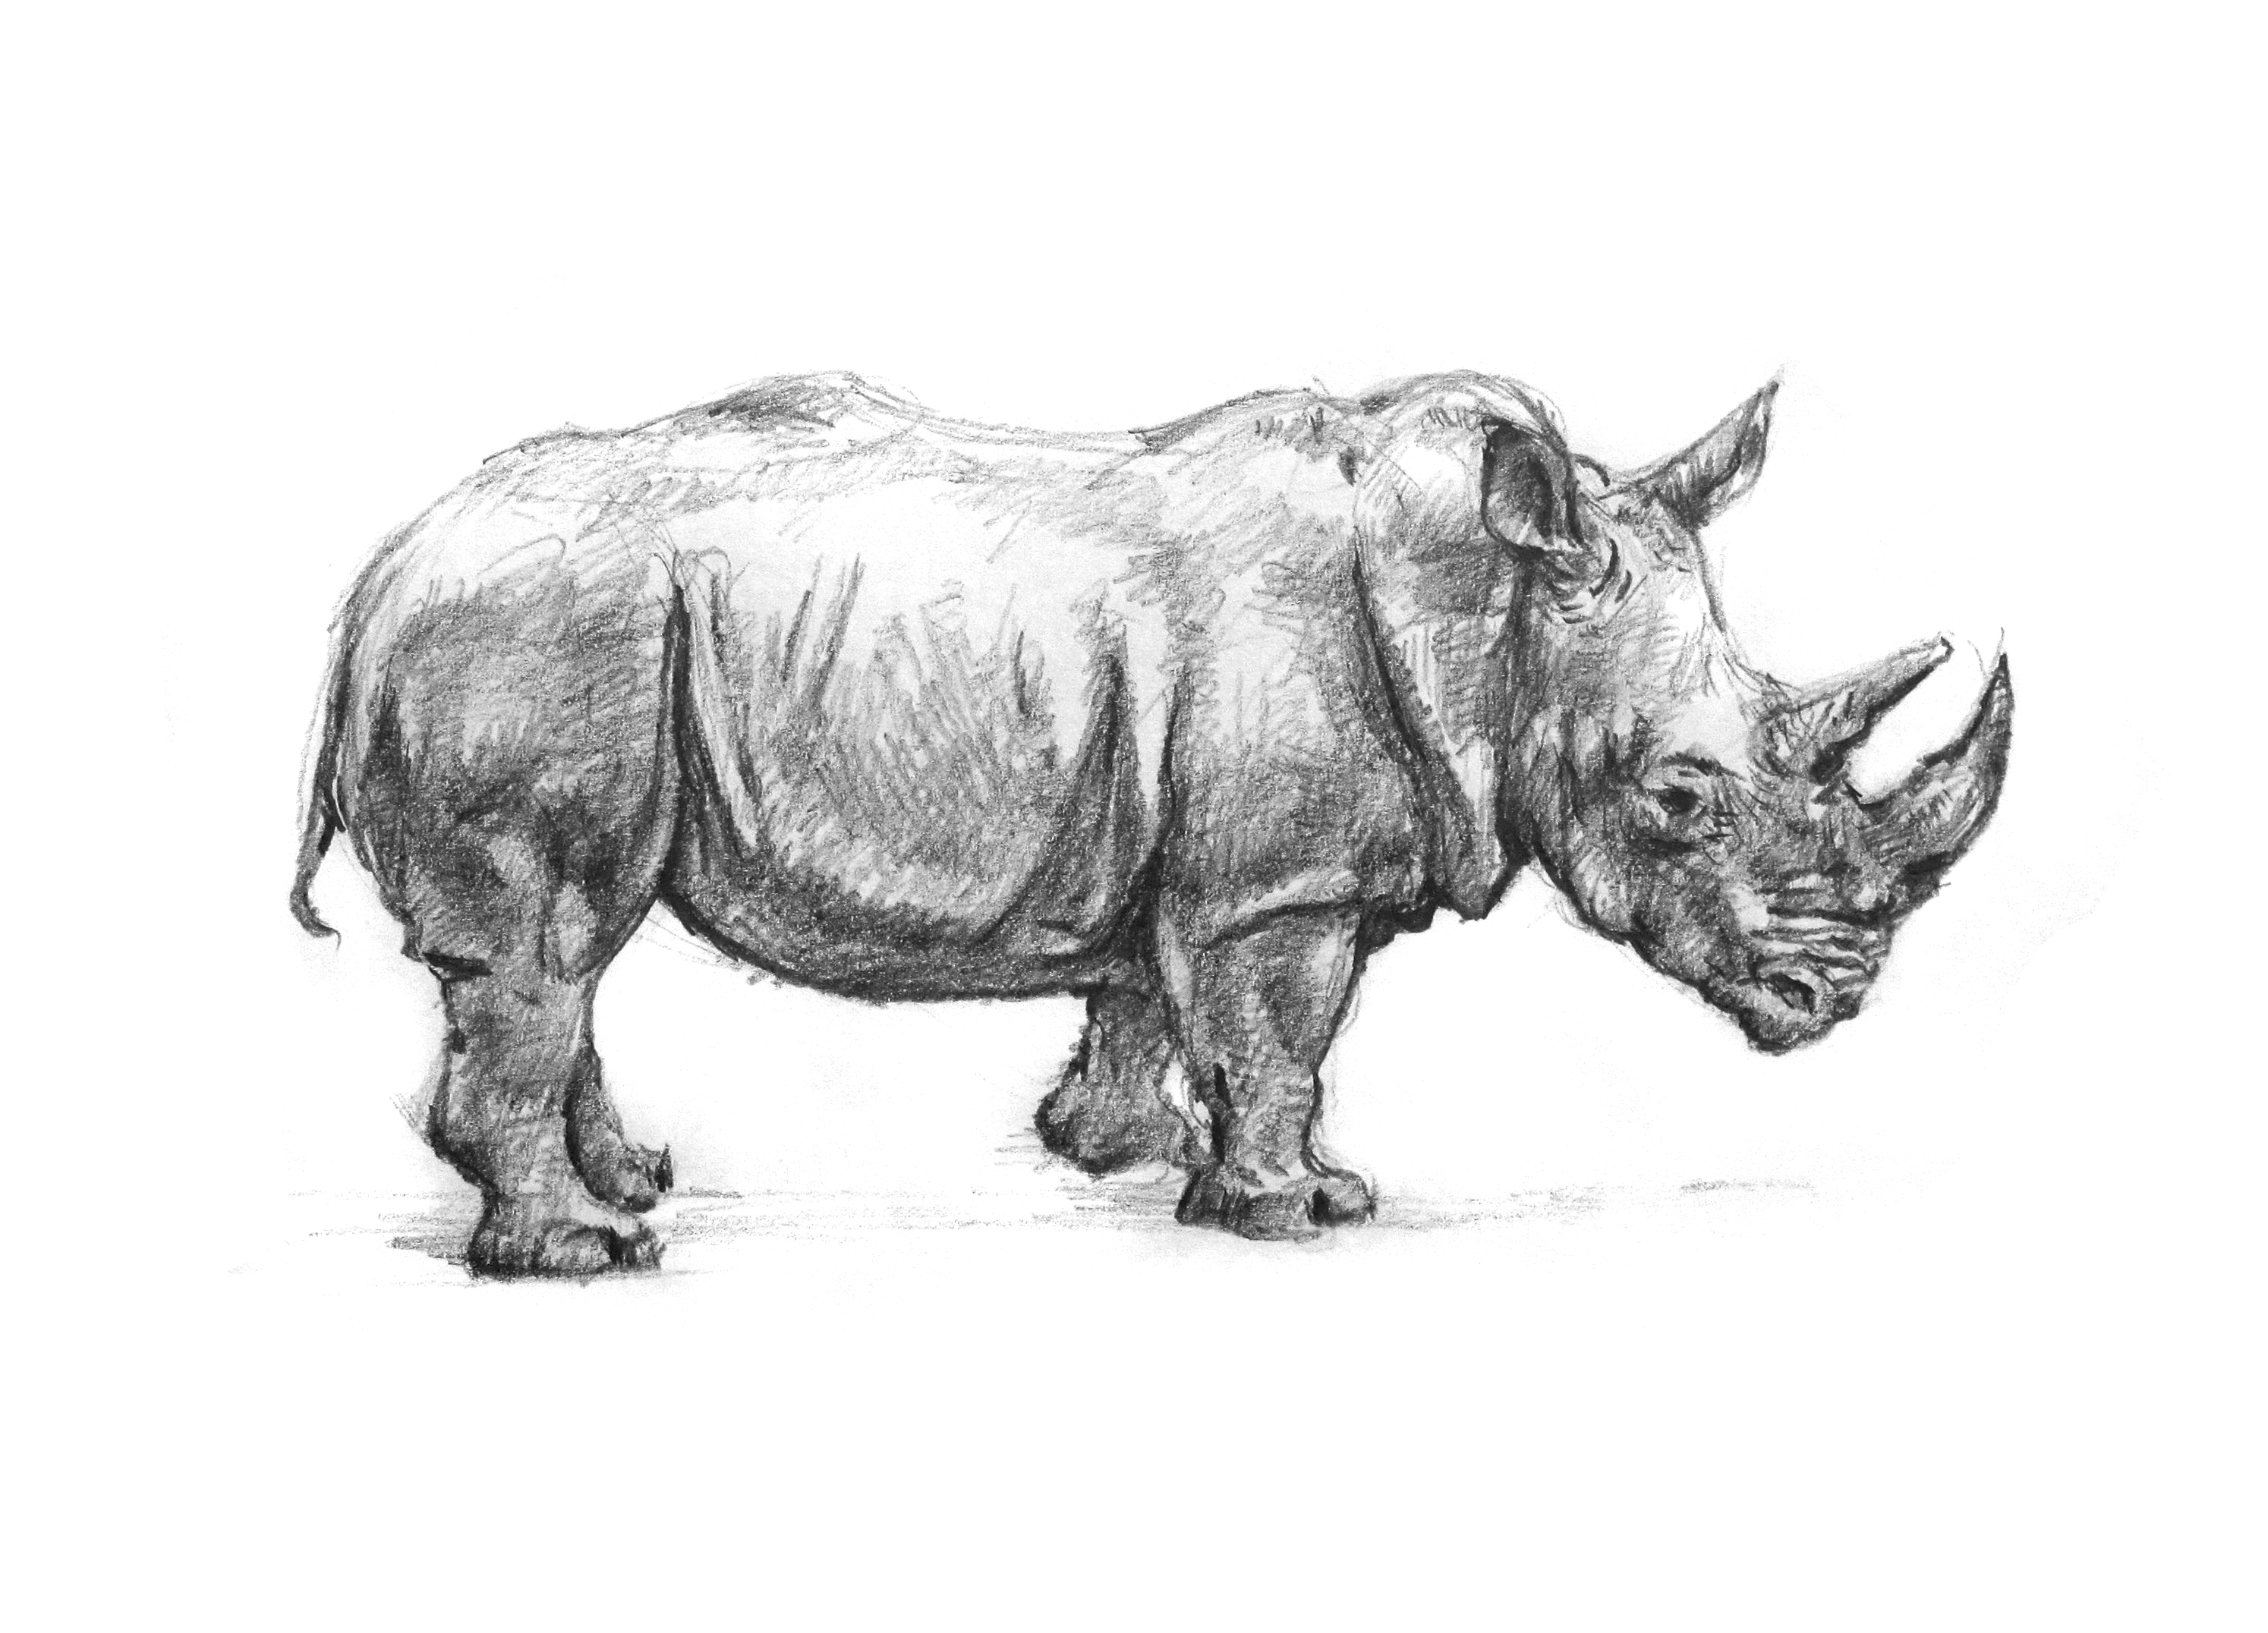 rhino drawings black rhino drawing by craig carlson rhino drawings